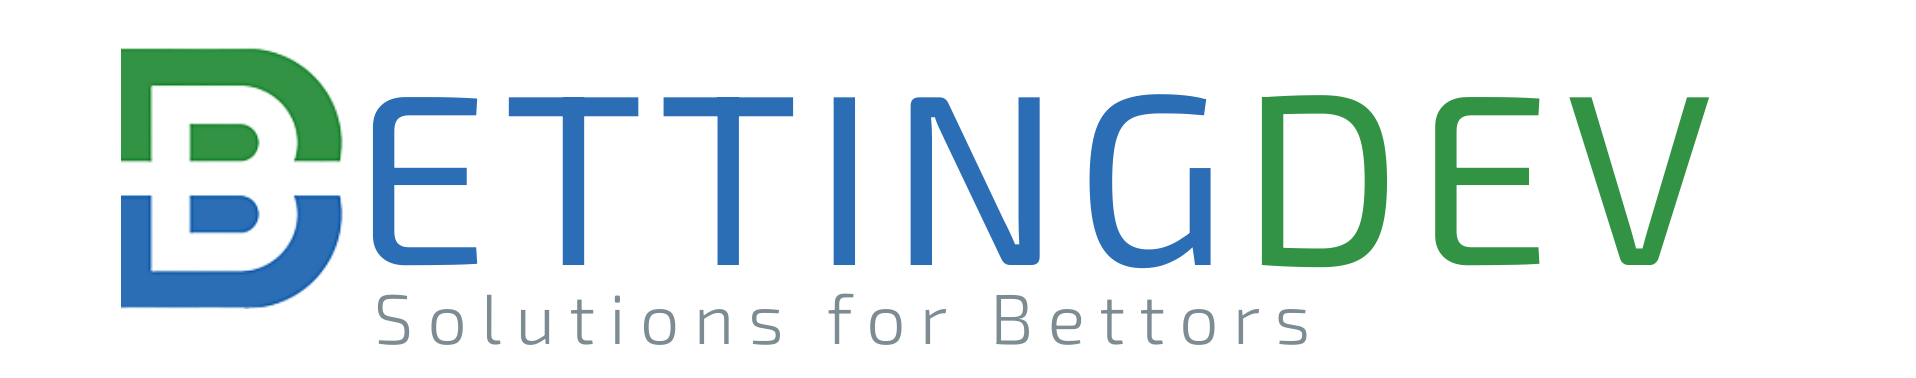 Bettingdev, solutions for bettors Logo